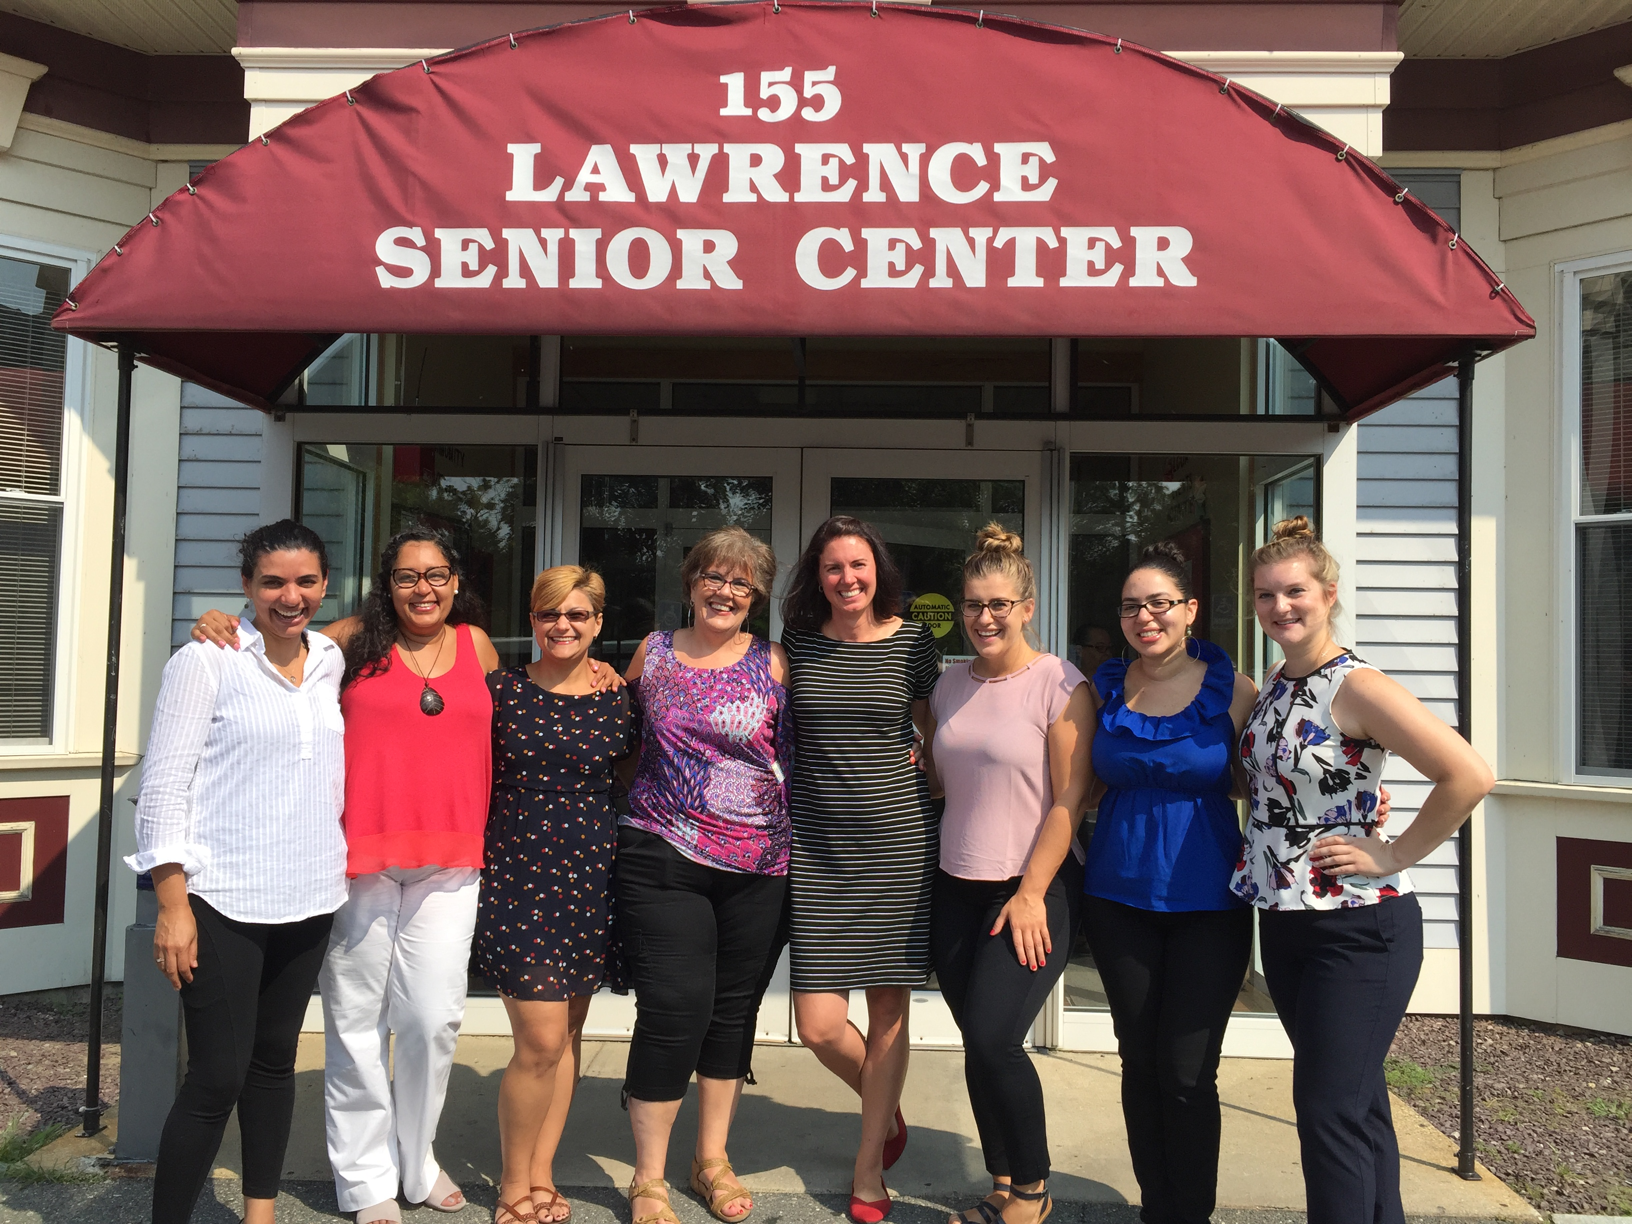 Sabrina Noel, Kelsey Mangano, and Michelly Santos in front of the Lawrence Senior Center